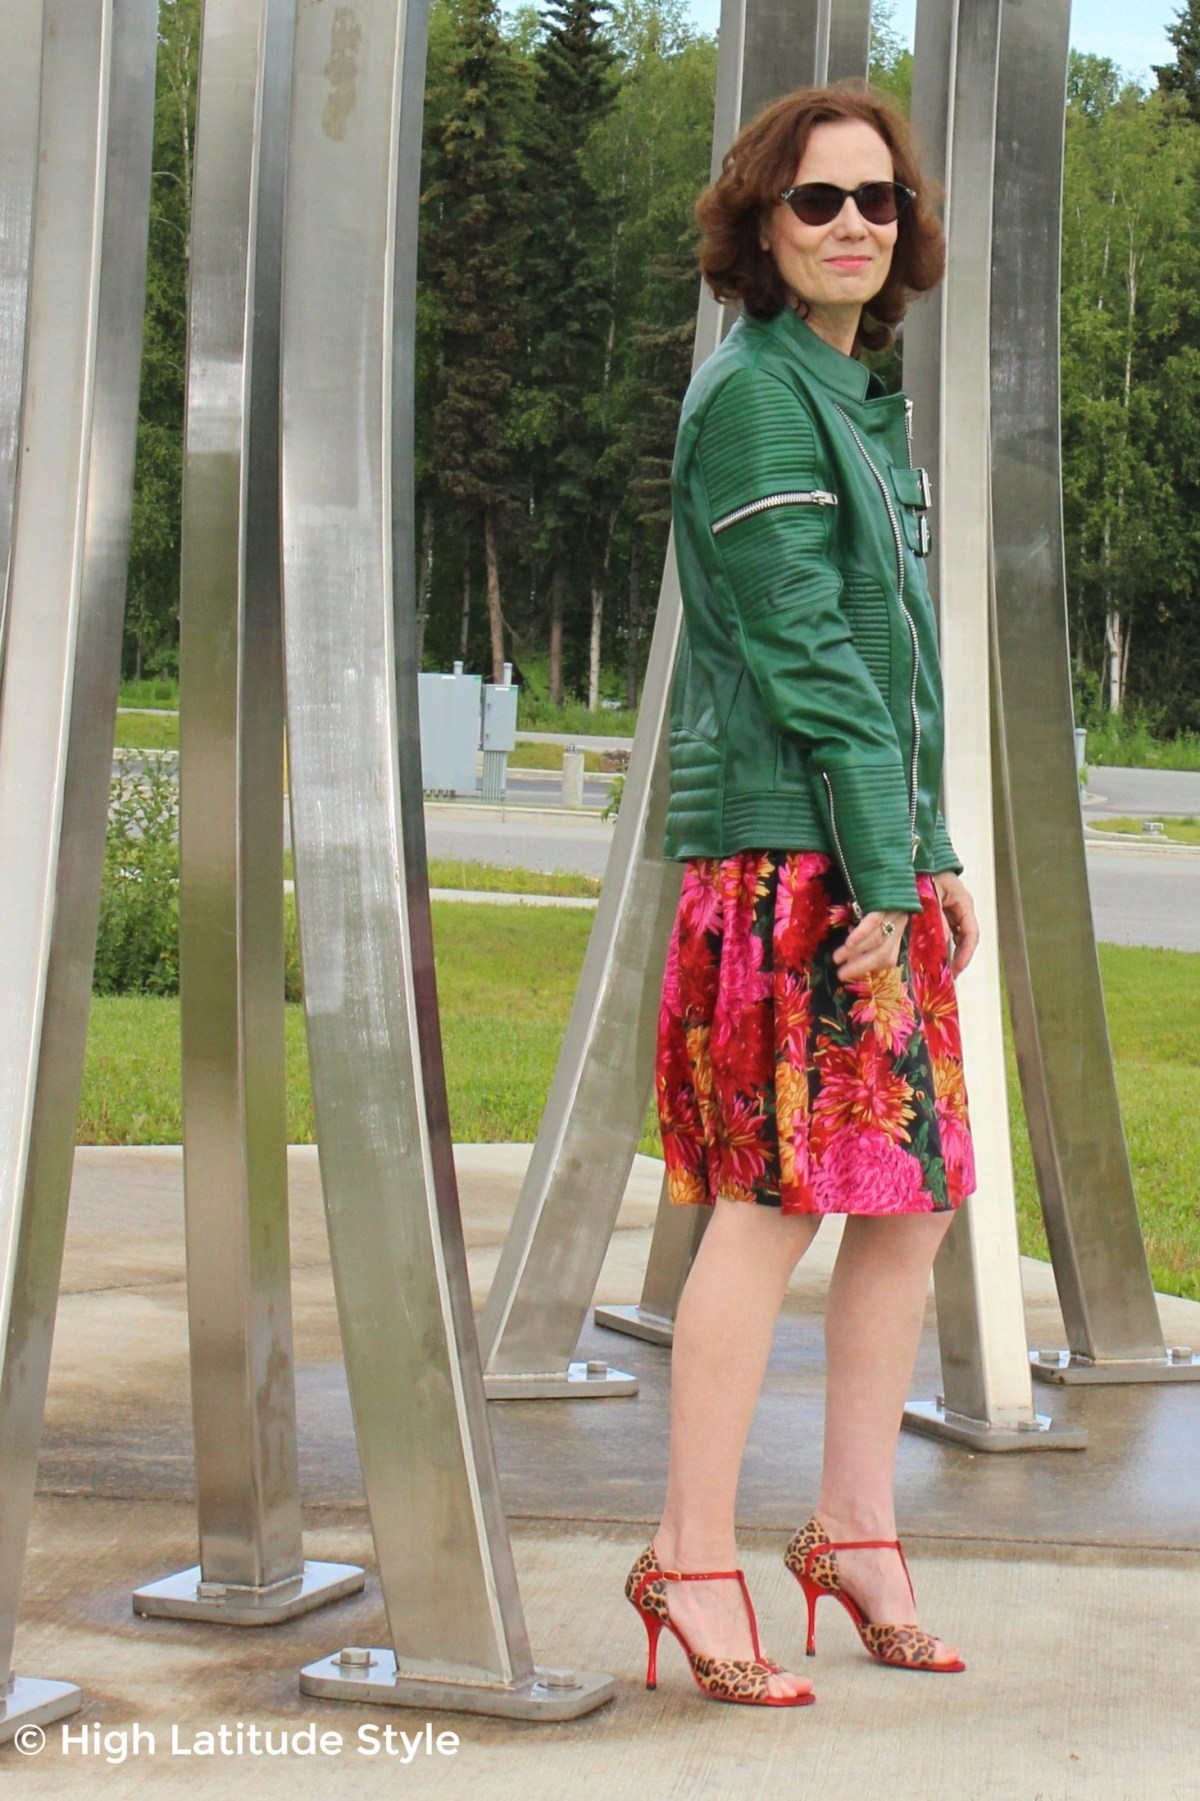 street style blogger in sheep skin jacket, full skirt, high heel sandals